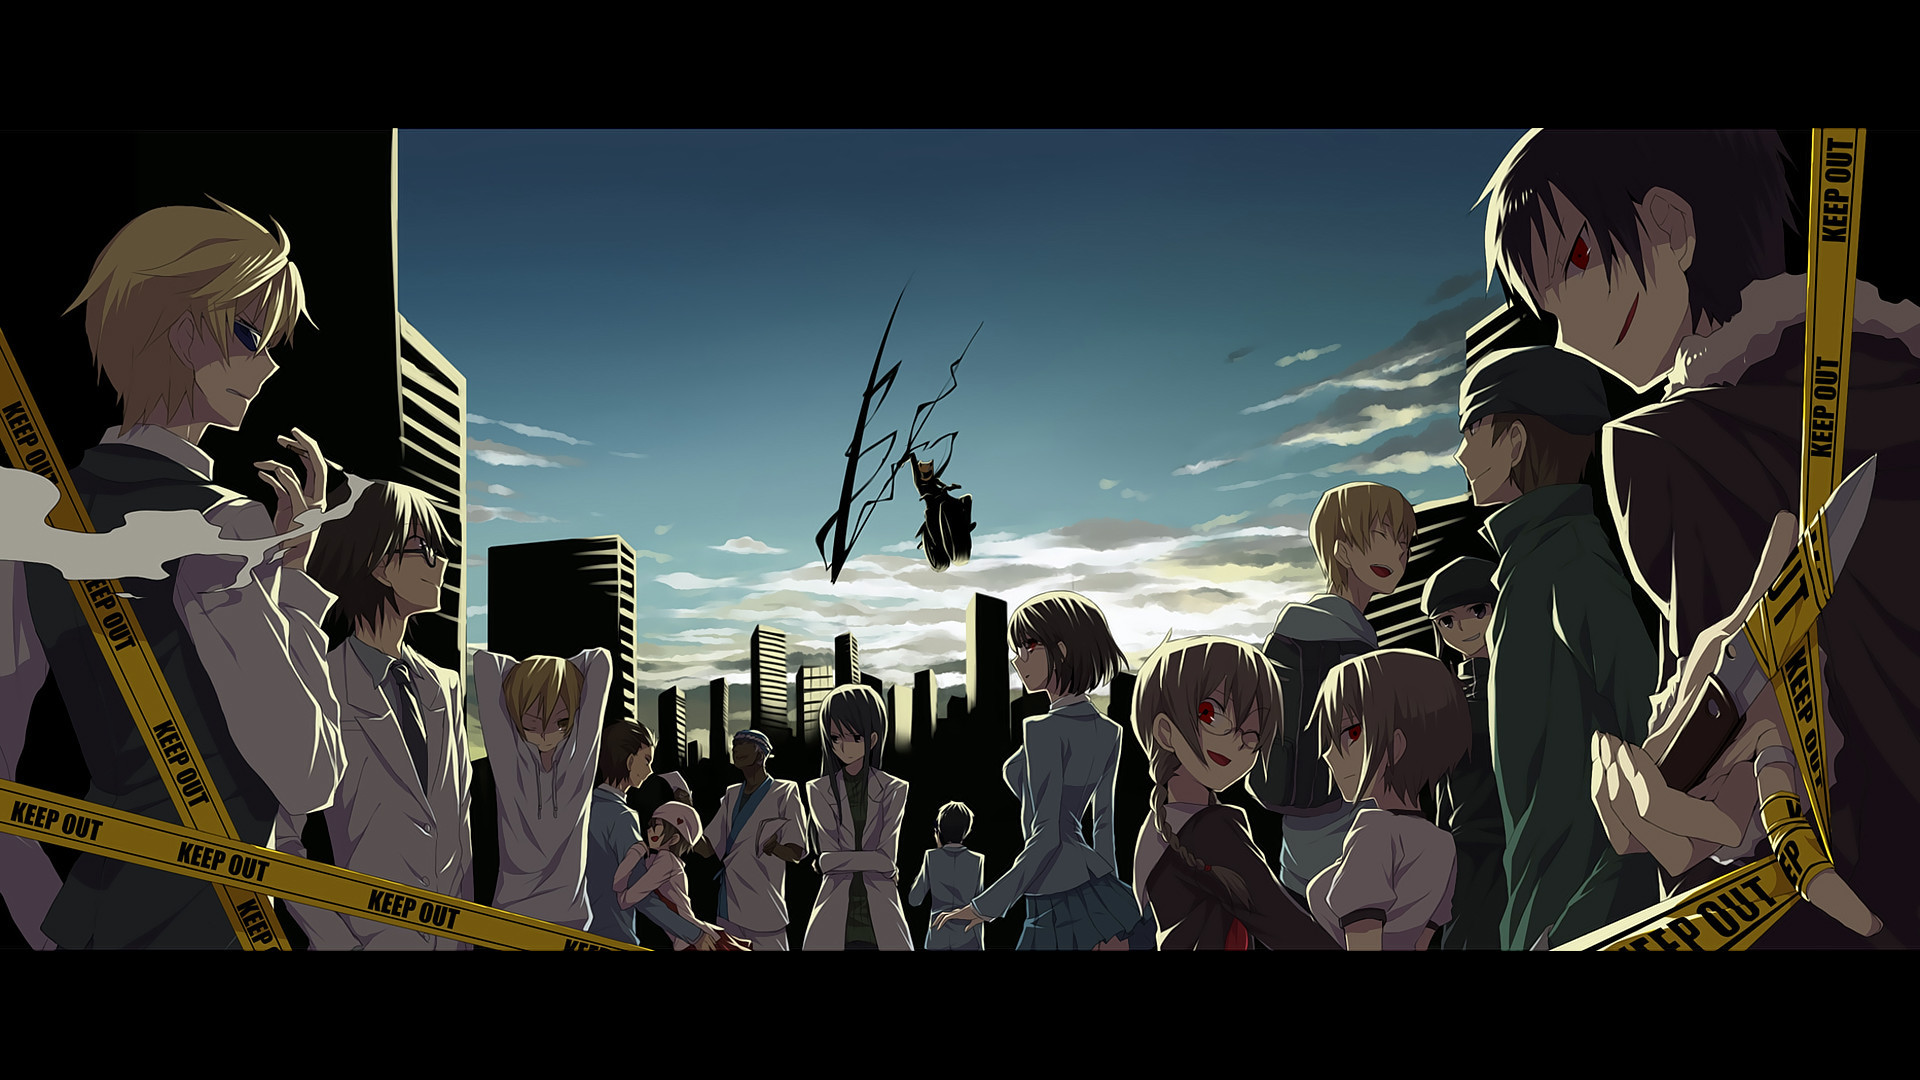 1920x1080  Anime - Durarara!! Celty Sturluson Wallpaper